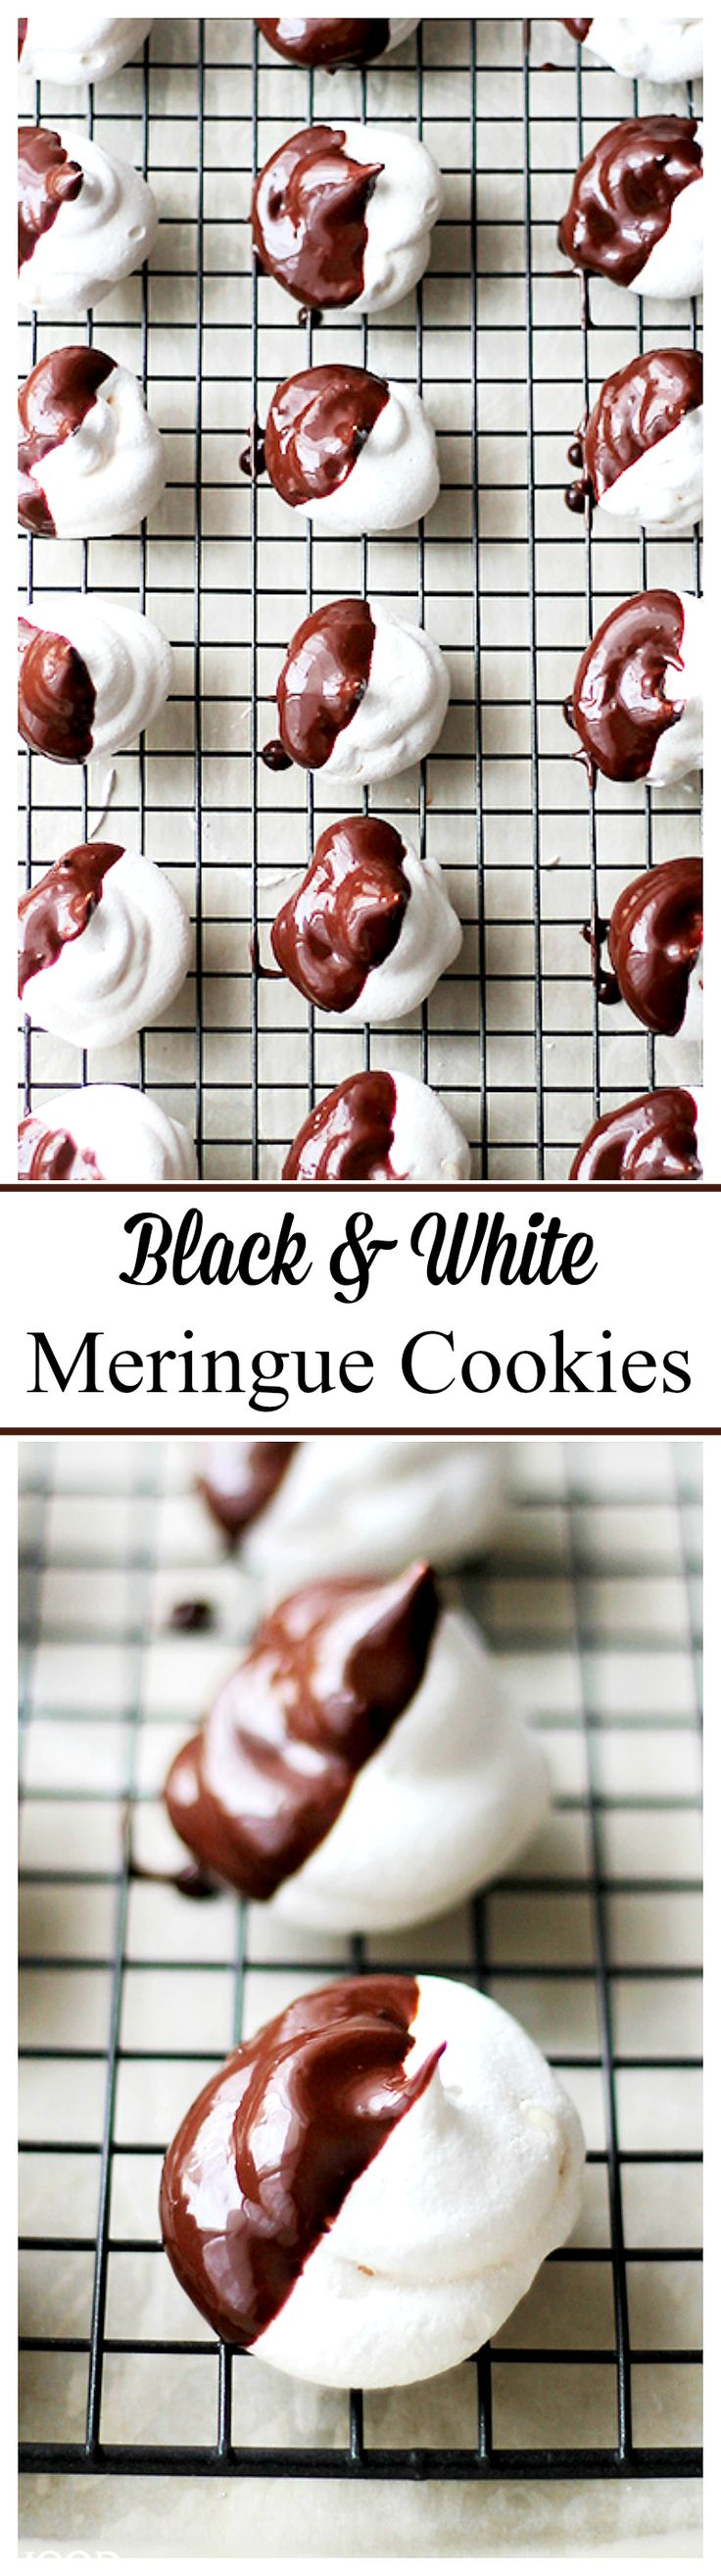 Black and White Meringue Cookies   www.diethood.com   Sweet, light and crisp, these Meringue Cookies are so wonderful and so delicious, and they're only 30 calories! PERFECT for your Easter dessert tray!!